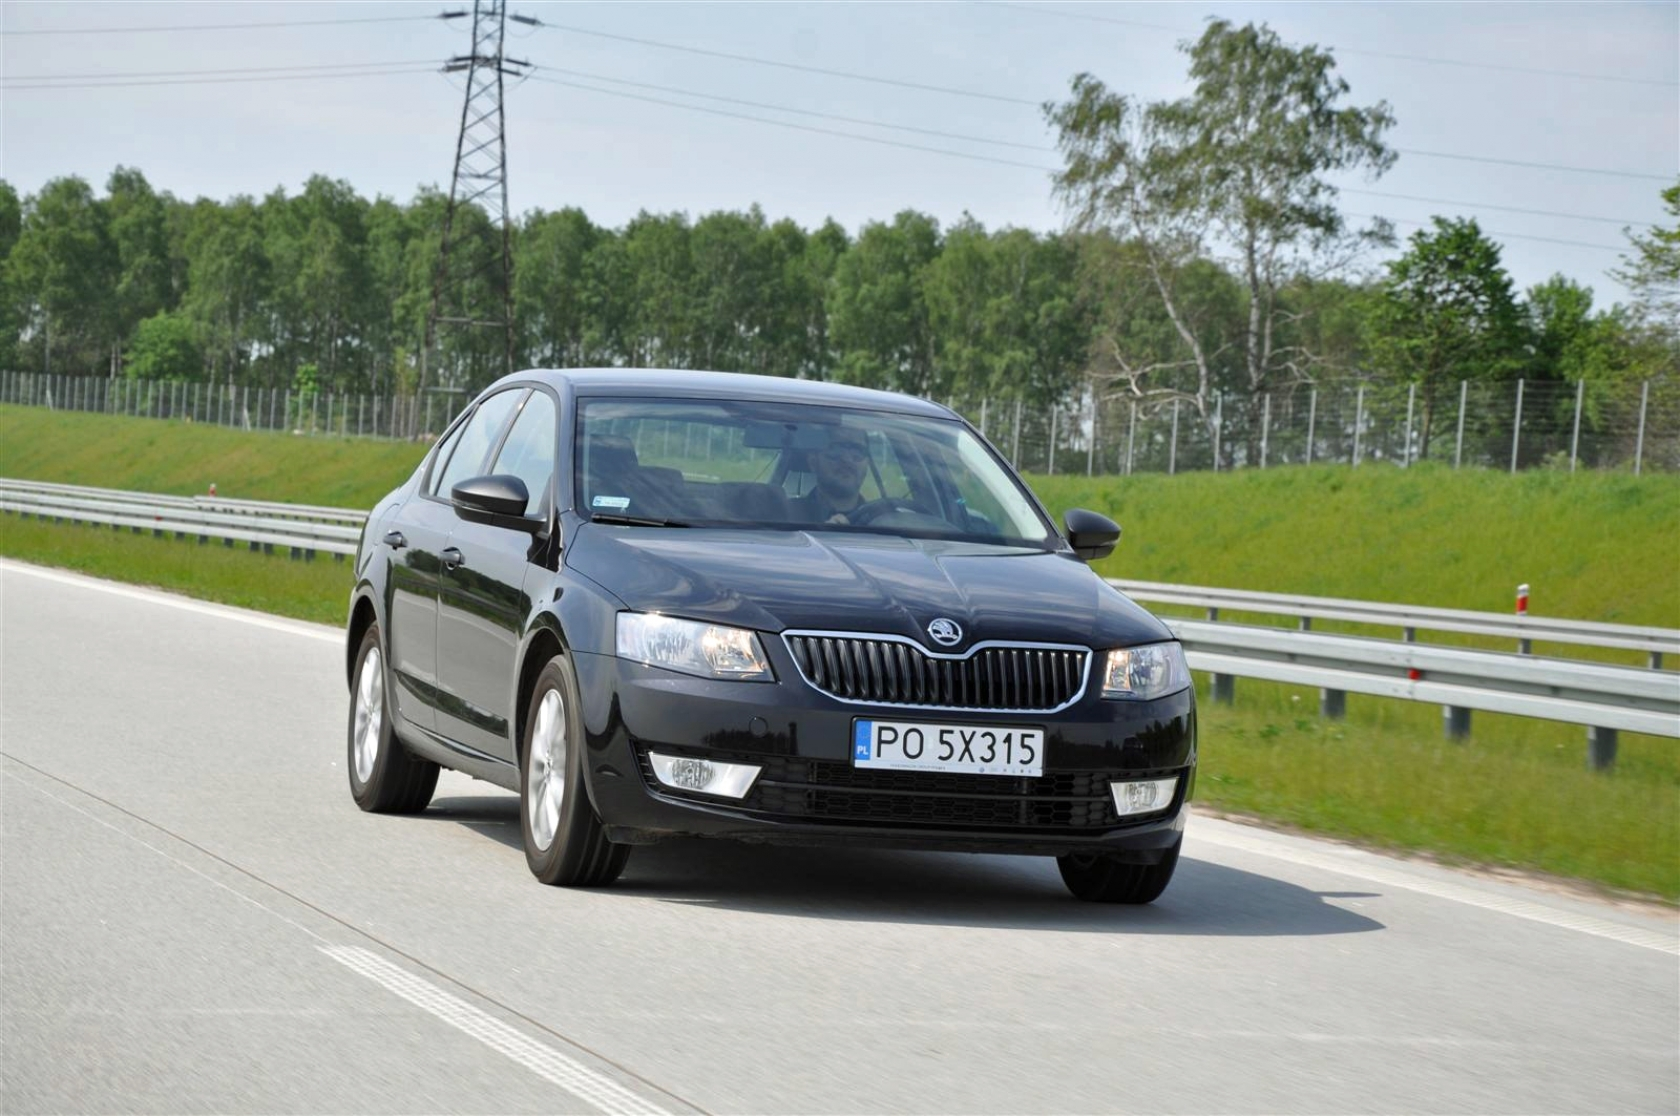 skoda octavia g-tec - makes sense, but doesn't | gazeo